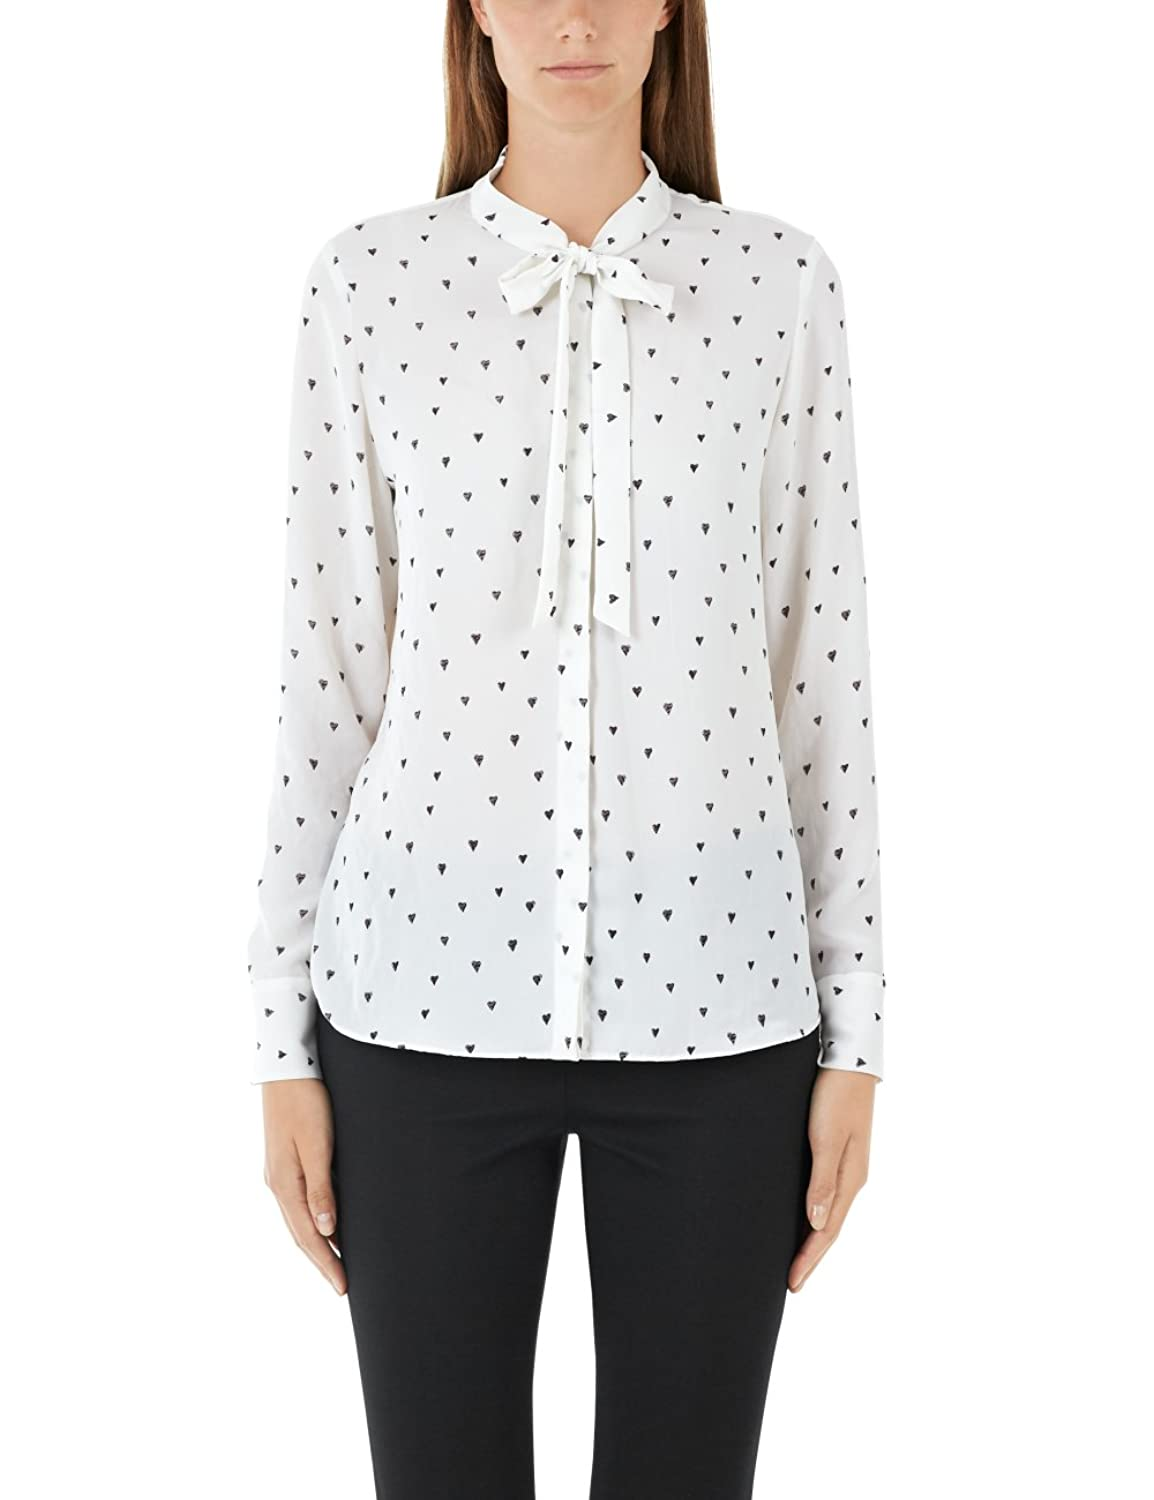 Marc Cain Additions Women's Ga 51.05 W12 Blouse